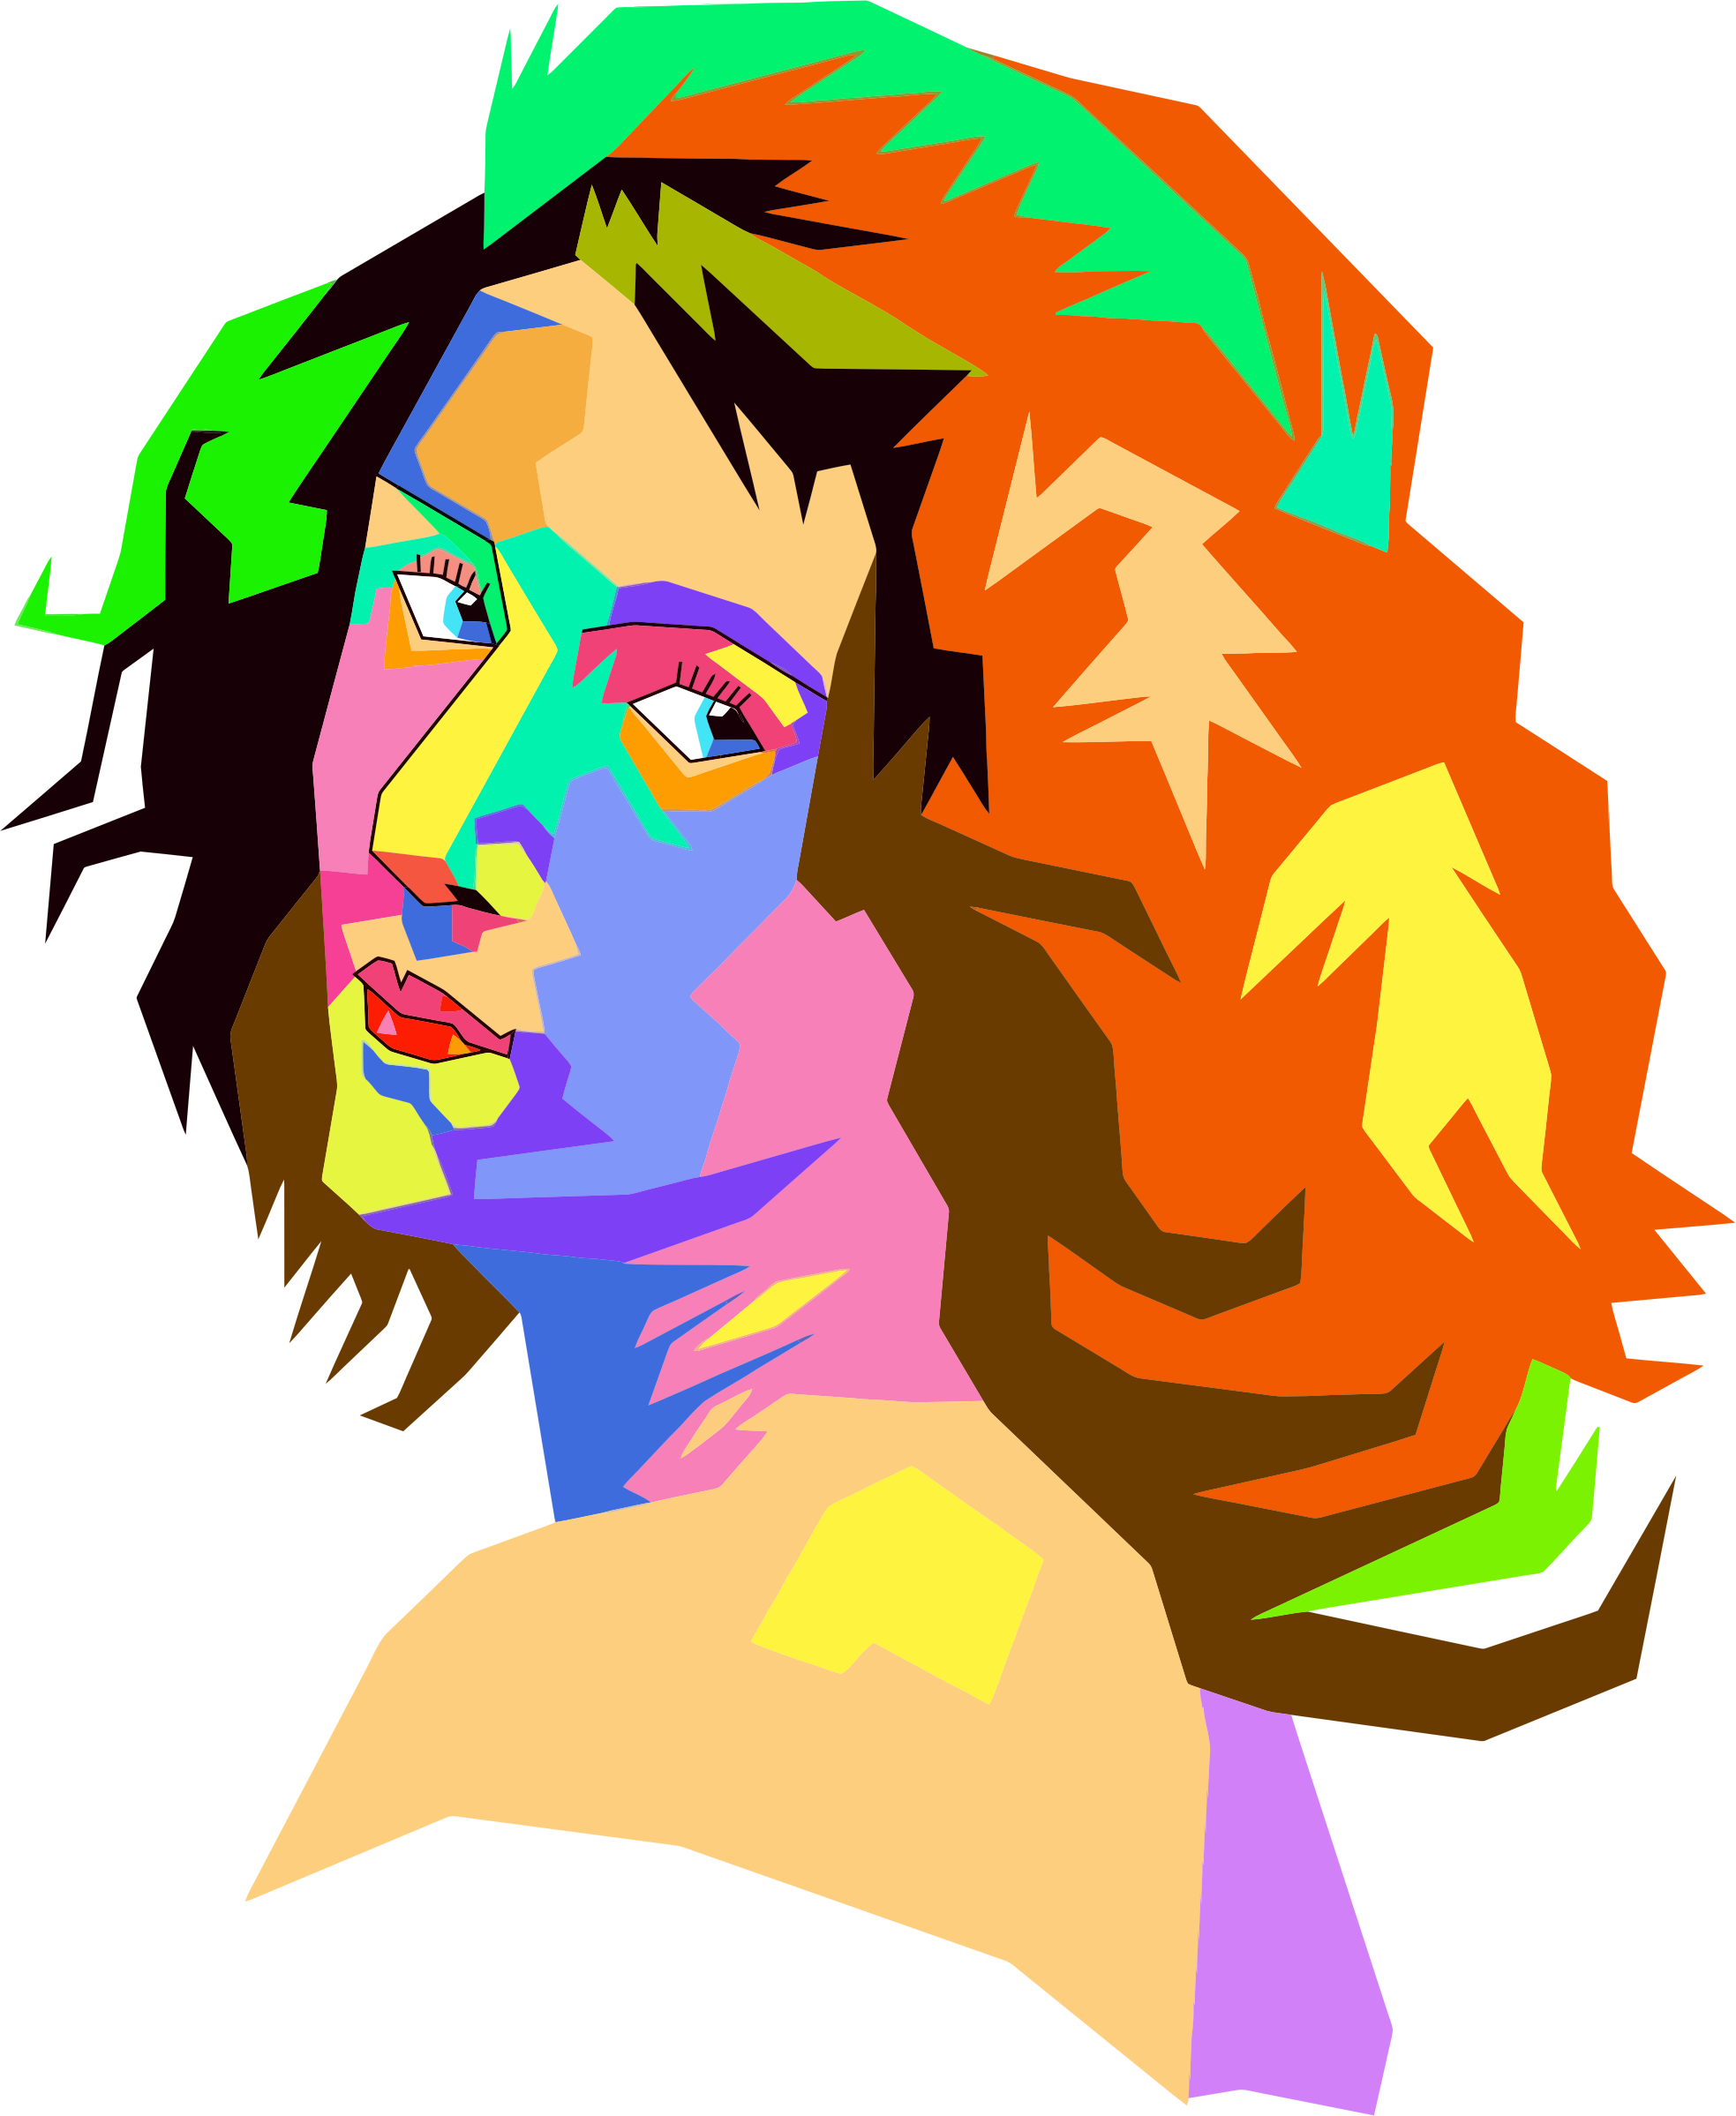 Pop Art Female Face by GDJ